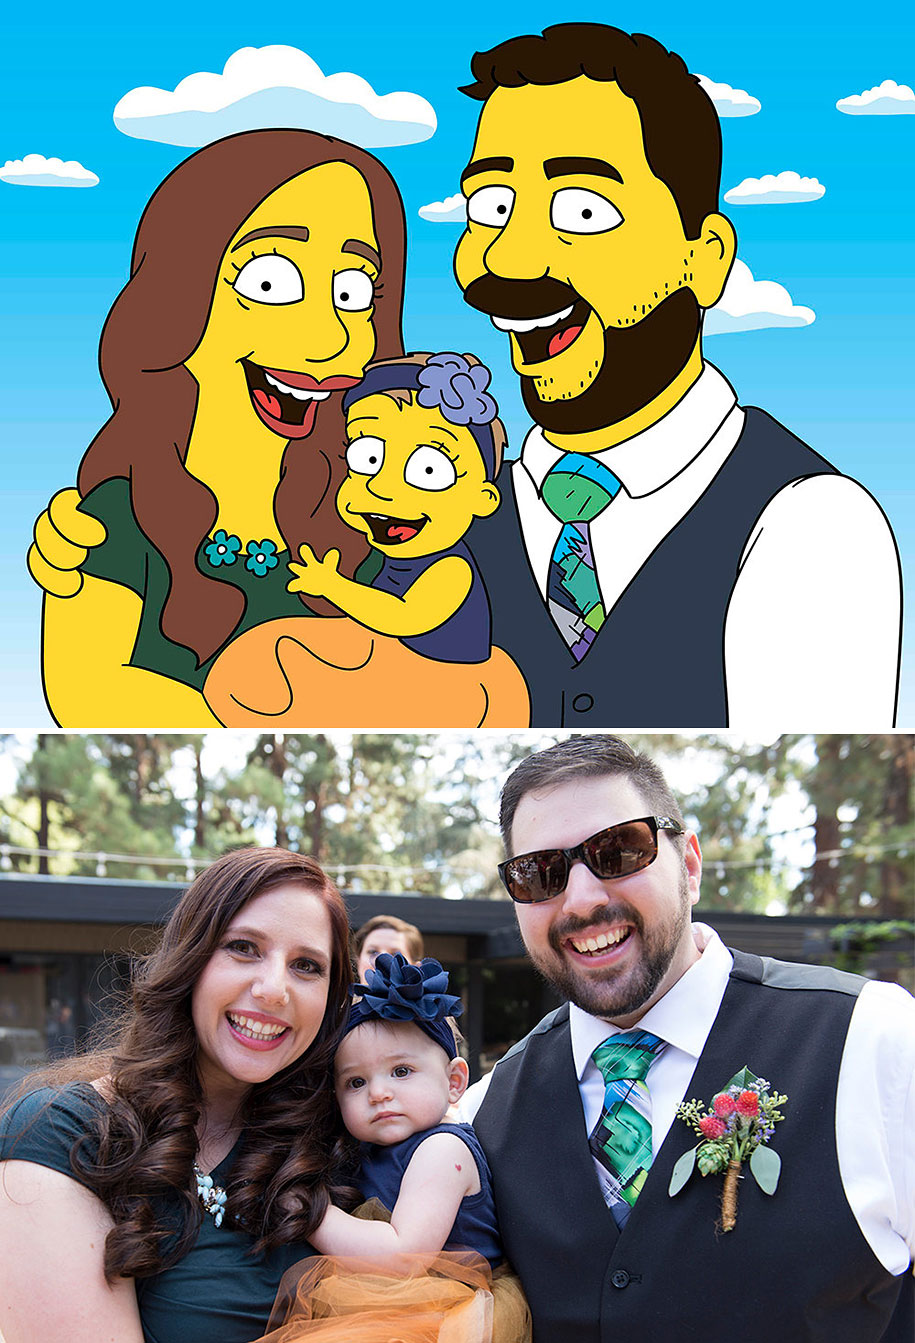 random-people-portraits-reimagine-simpsons-valerie-zaremska-3